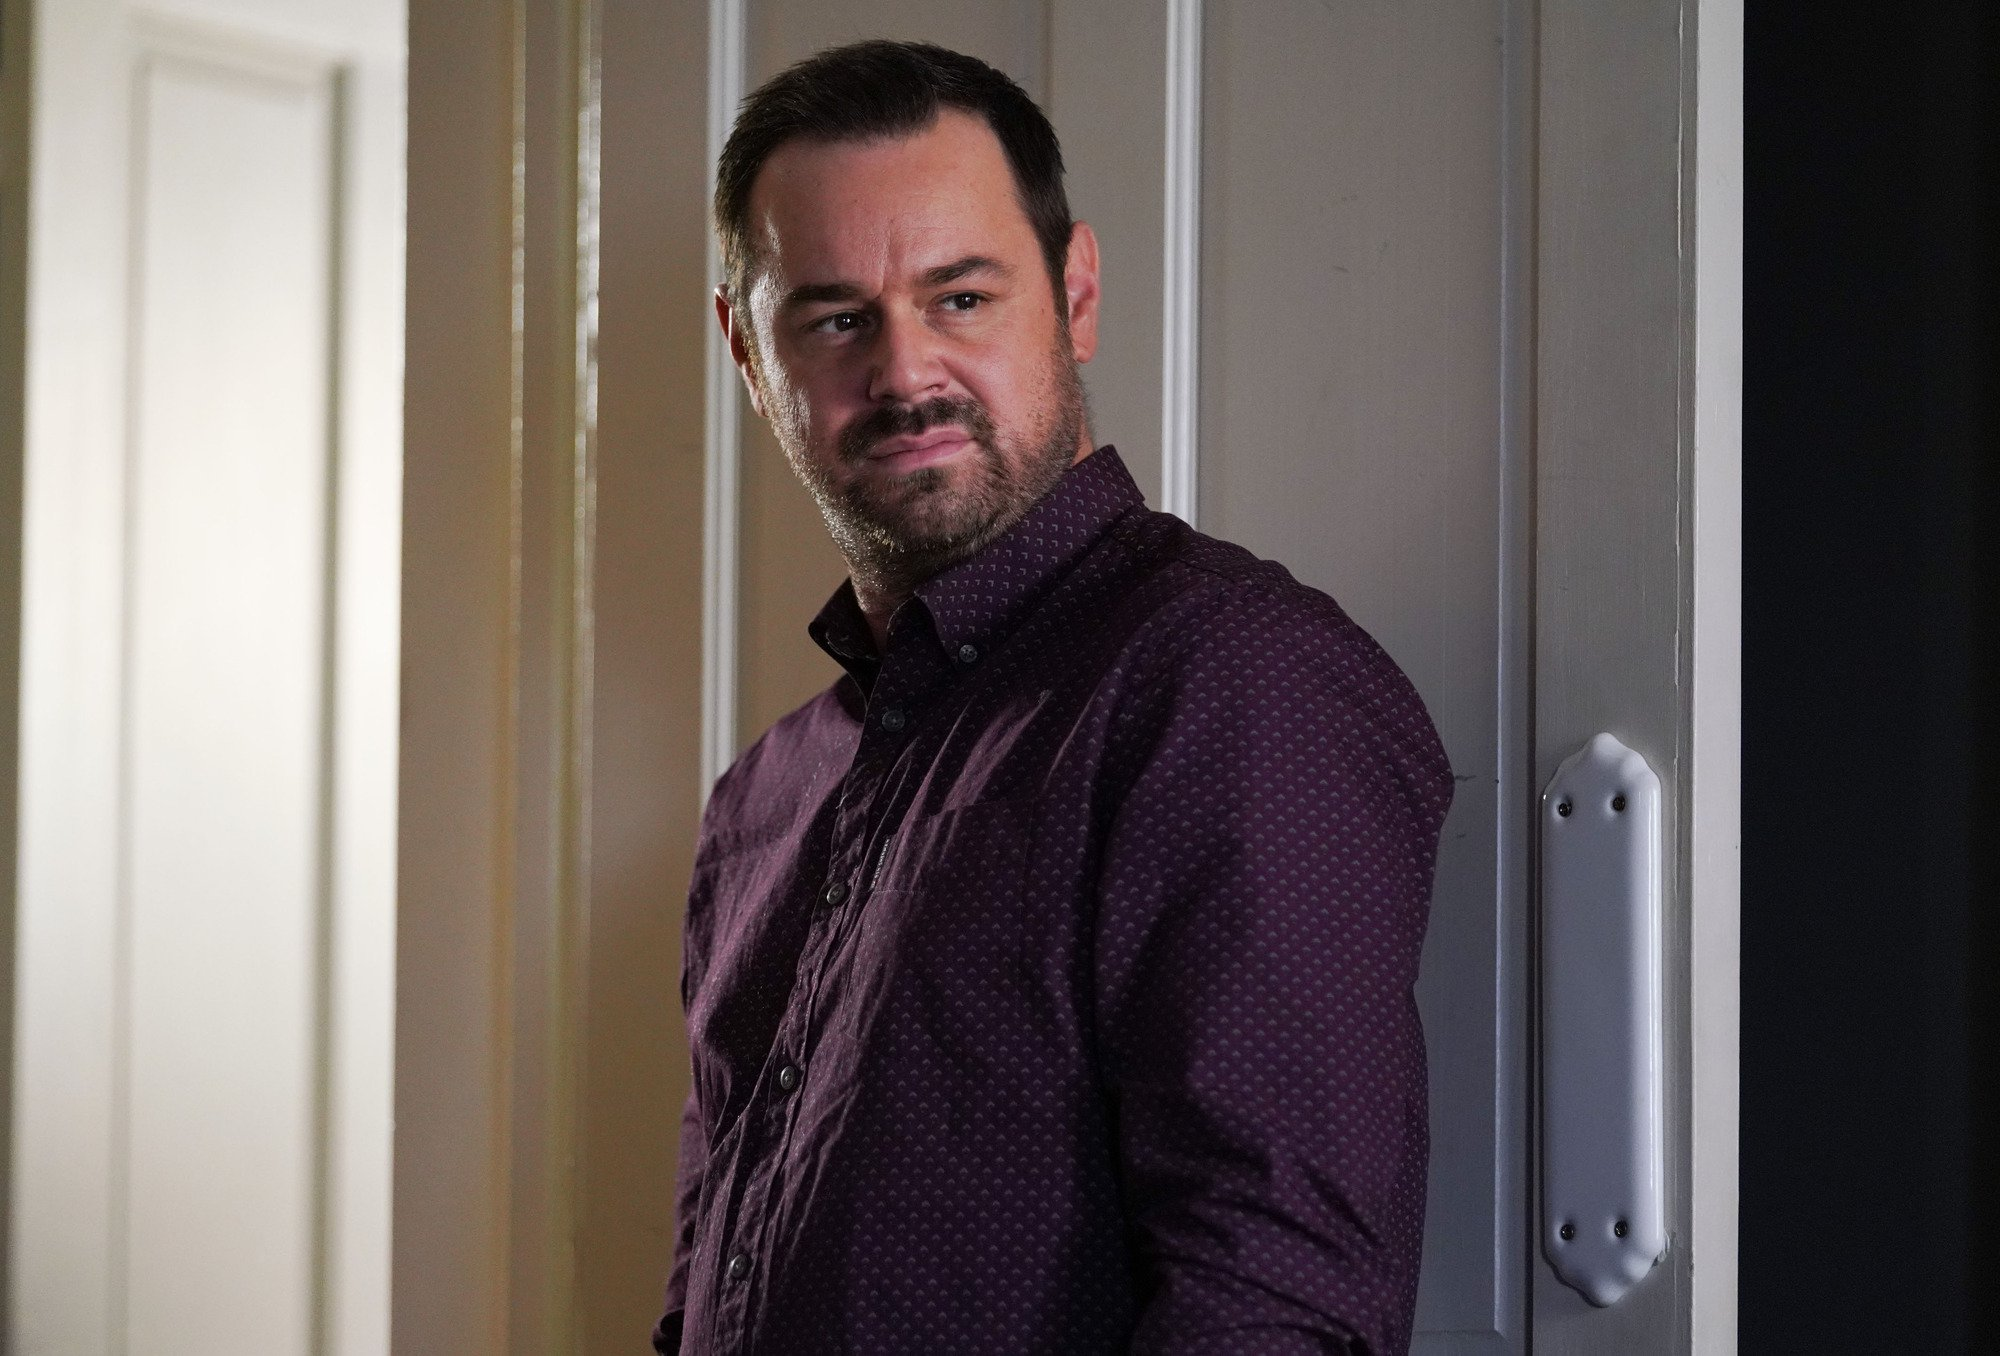 WARNING: Embargoed for publication until 00:00:01 on 08/01/2019 - Programme Name: EastEnders - January - March 2019 - TX: 17/01/2019 - Episode: EastEnders - January - March - 2019 - 5852 (No. 5852) - Picture Shows: *STRICTLY NOT FOR PUBLICATION UNTIL 00:01HRS TUESDAY 8th JANUARY 2019* Tensions are high between Mick and Linda Mick Carter (DANNY DYER) - (C) BBC - Photographer: Kieron McCarron